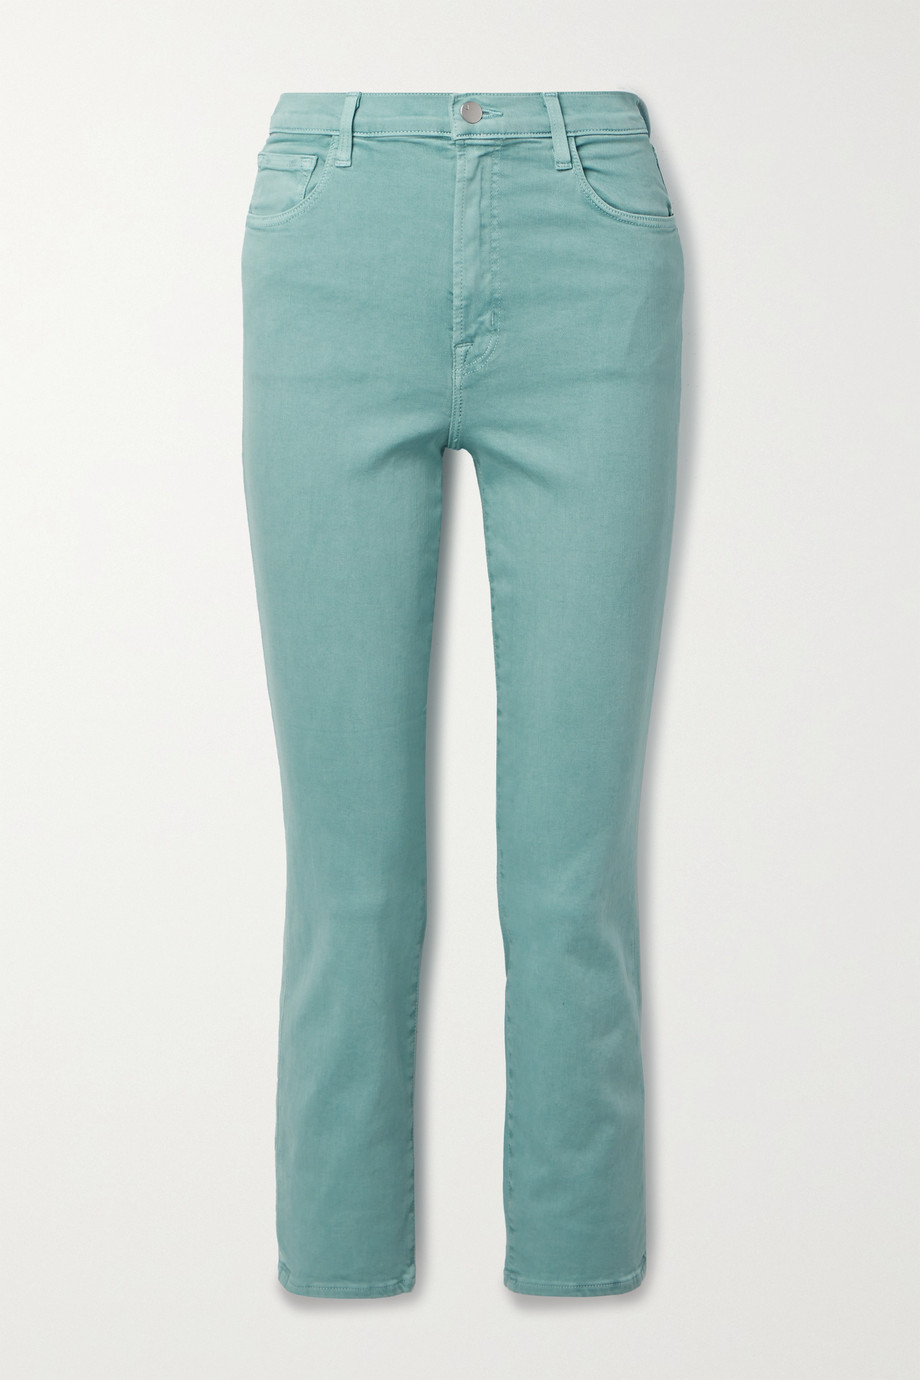 J Brand Alma cropped high-rise straight-leg jeans